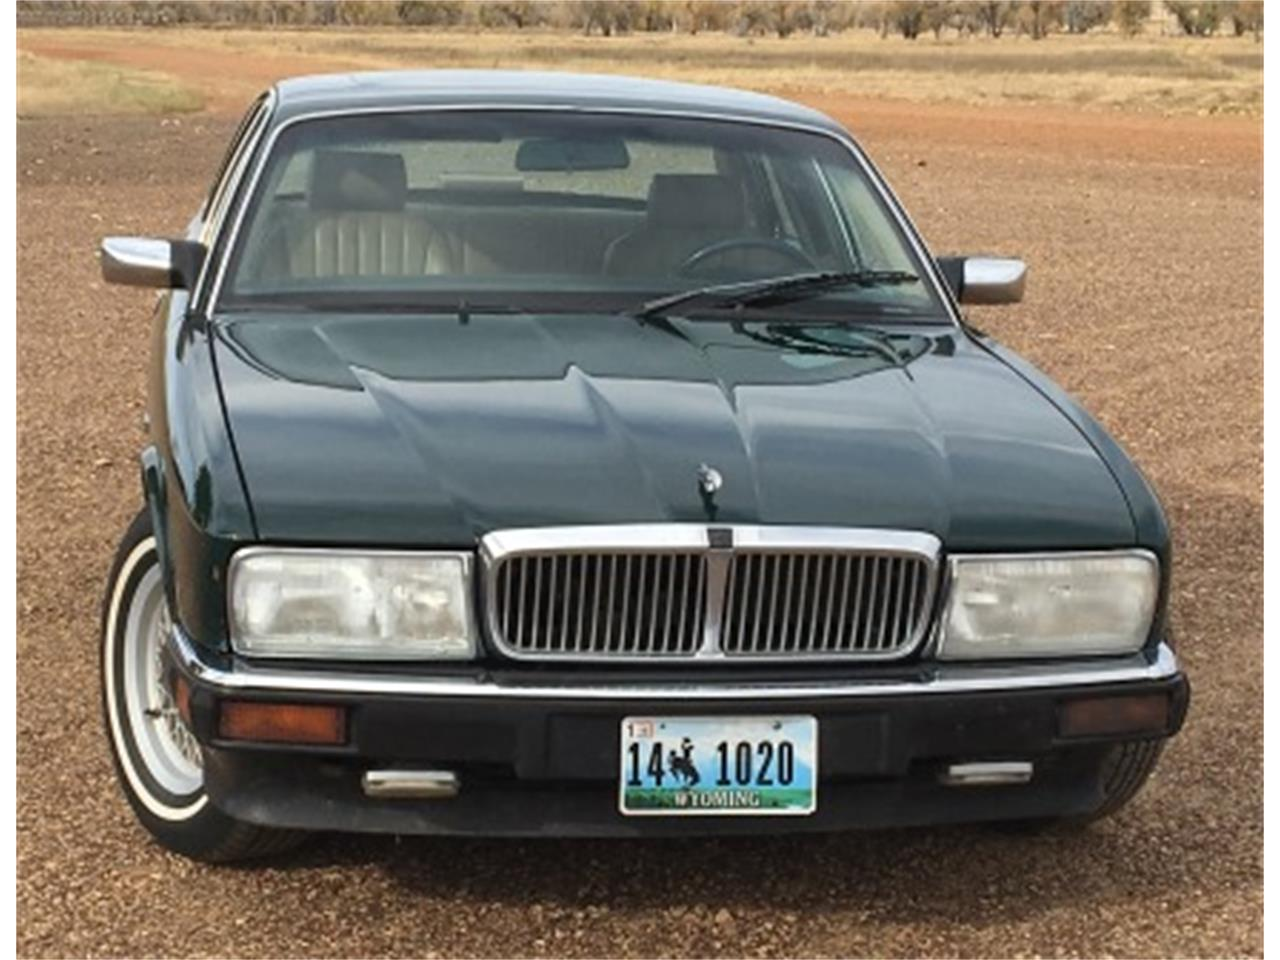 Large Picture of 1991 XJ6 located in Wyoming Offered by a Private Seller - L3B6